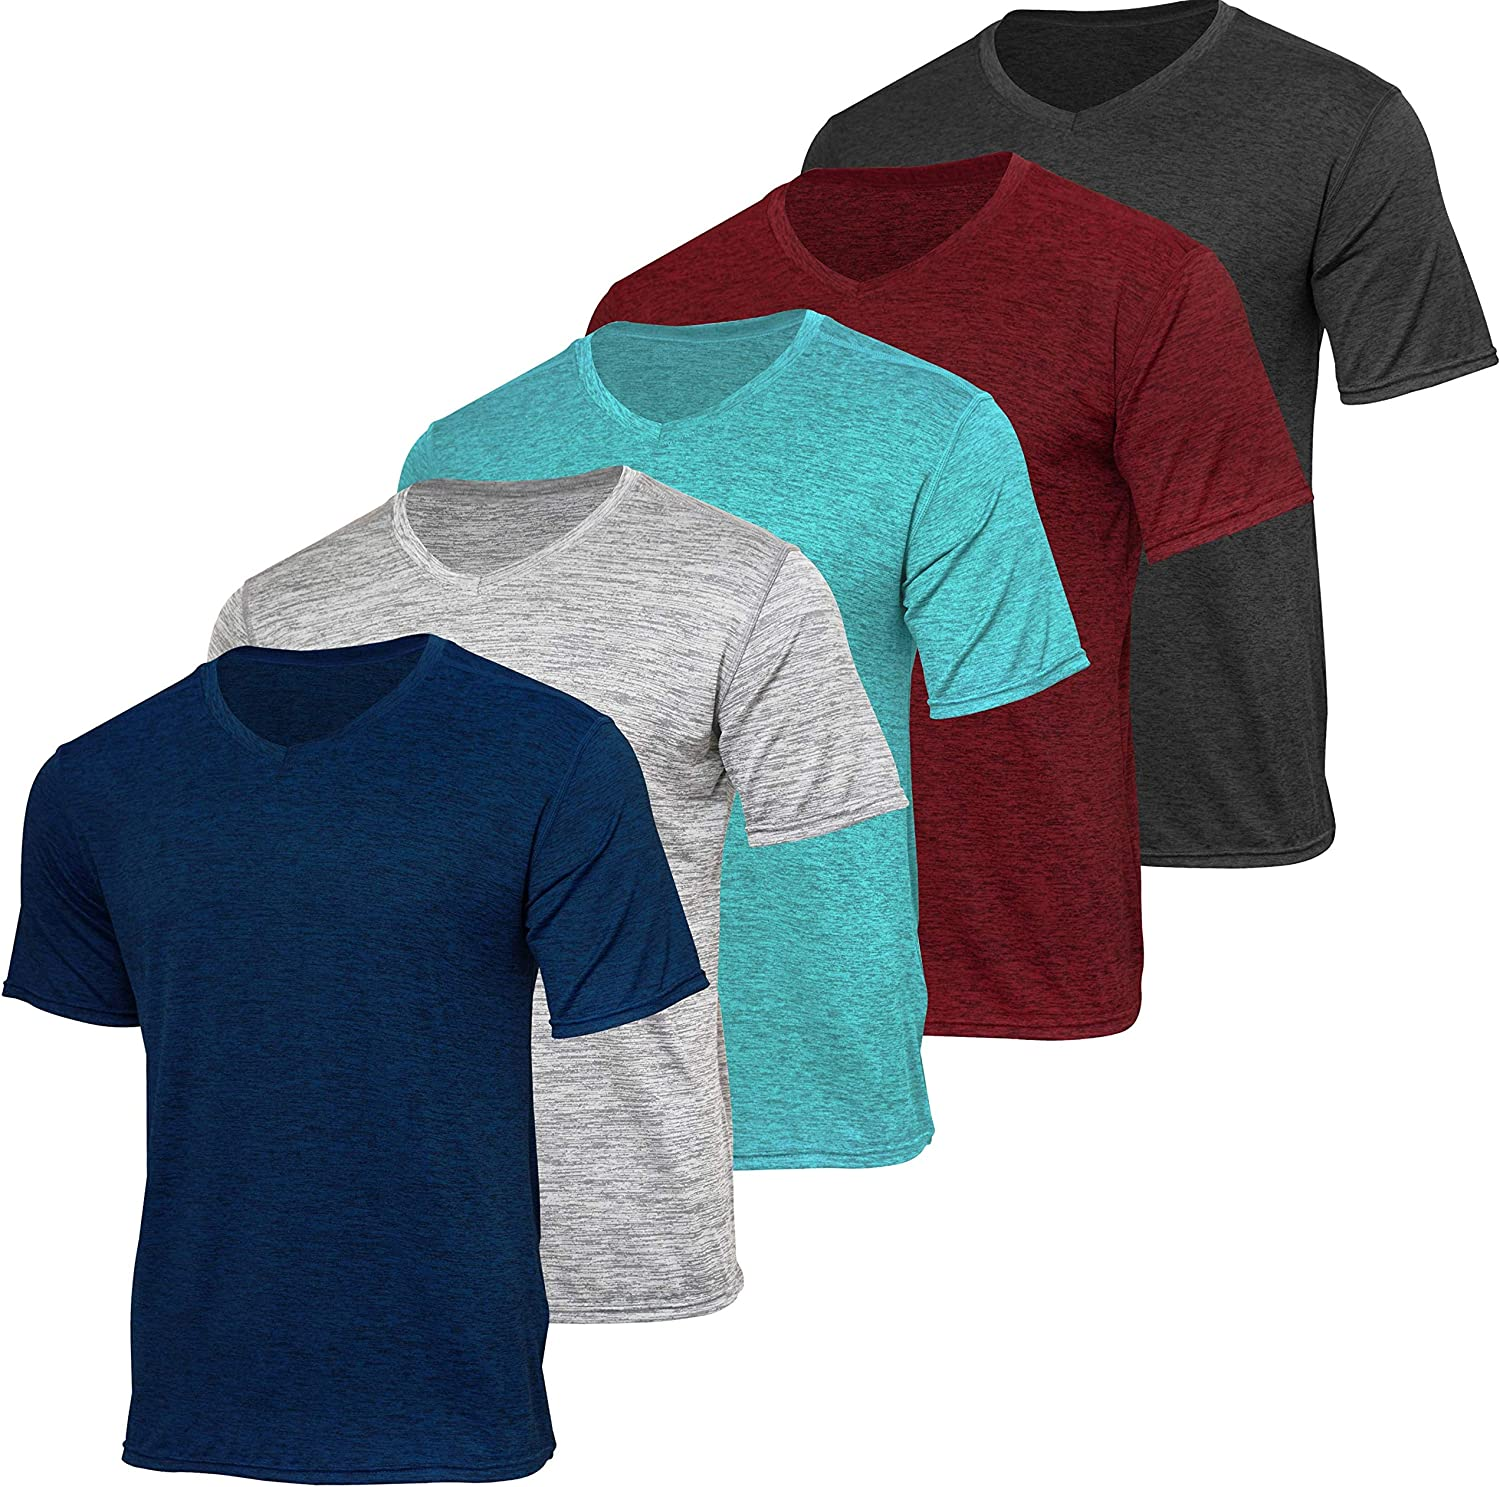 5 Pack: Men's V-Neck Dry-Fit Moisture Wicking Active Athletic Tech Performance T-Shirt: Clothing